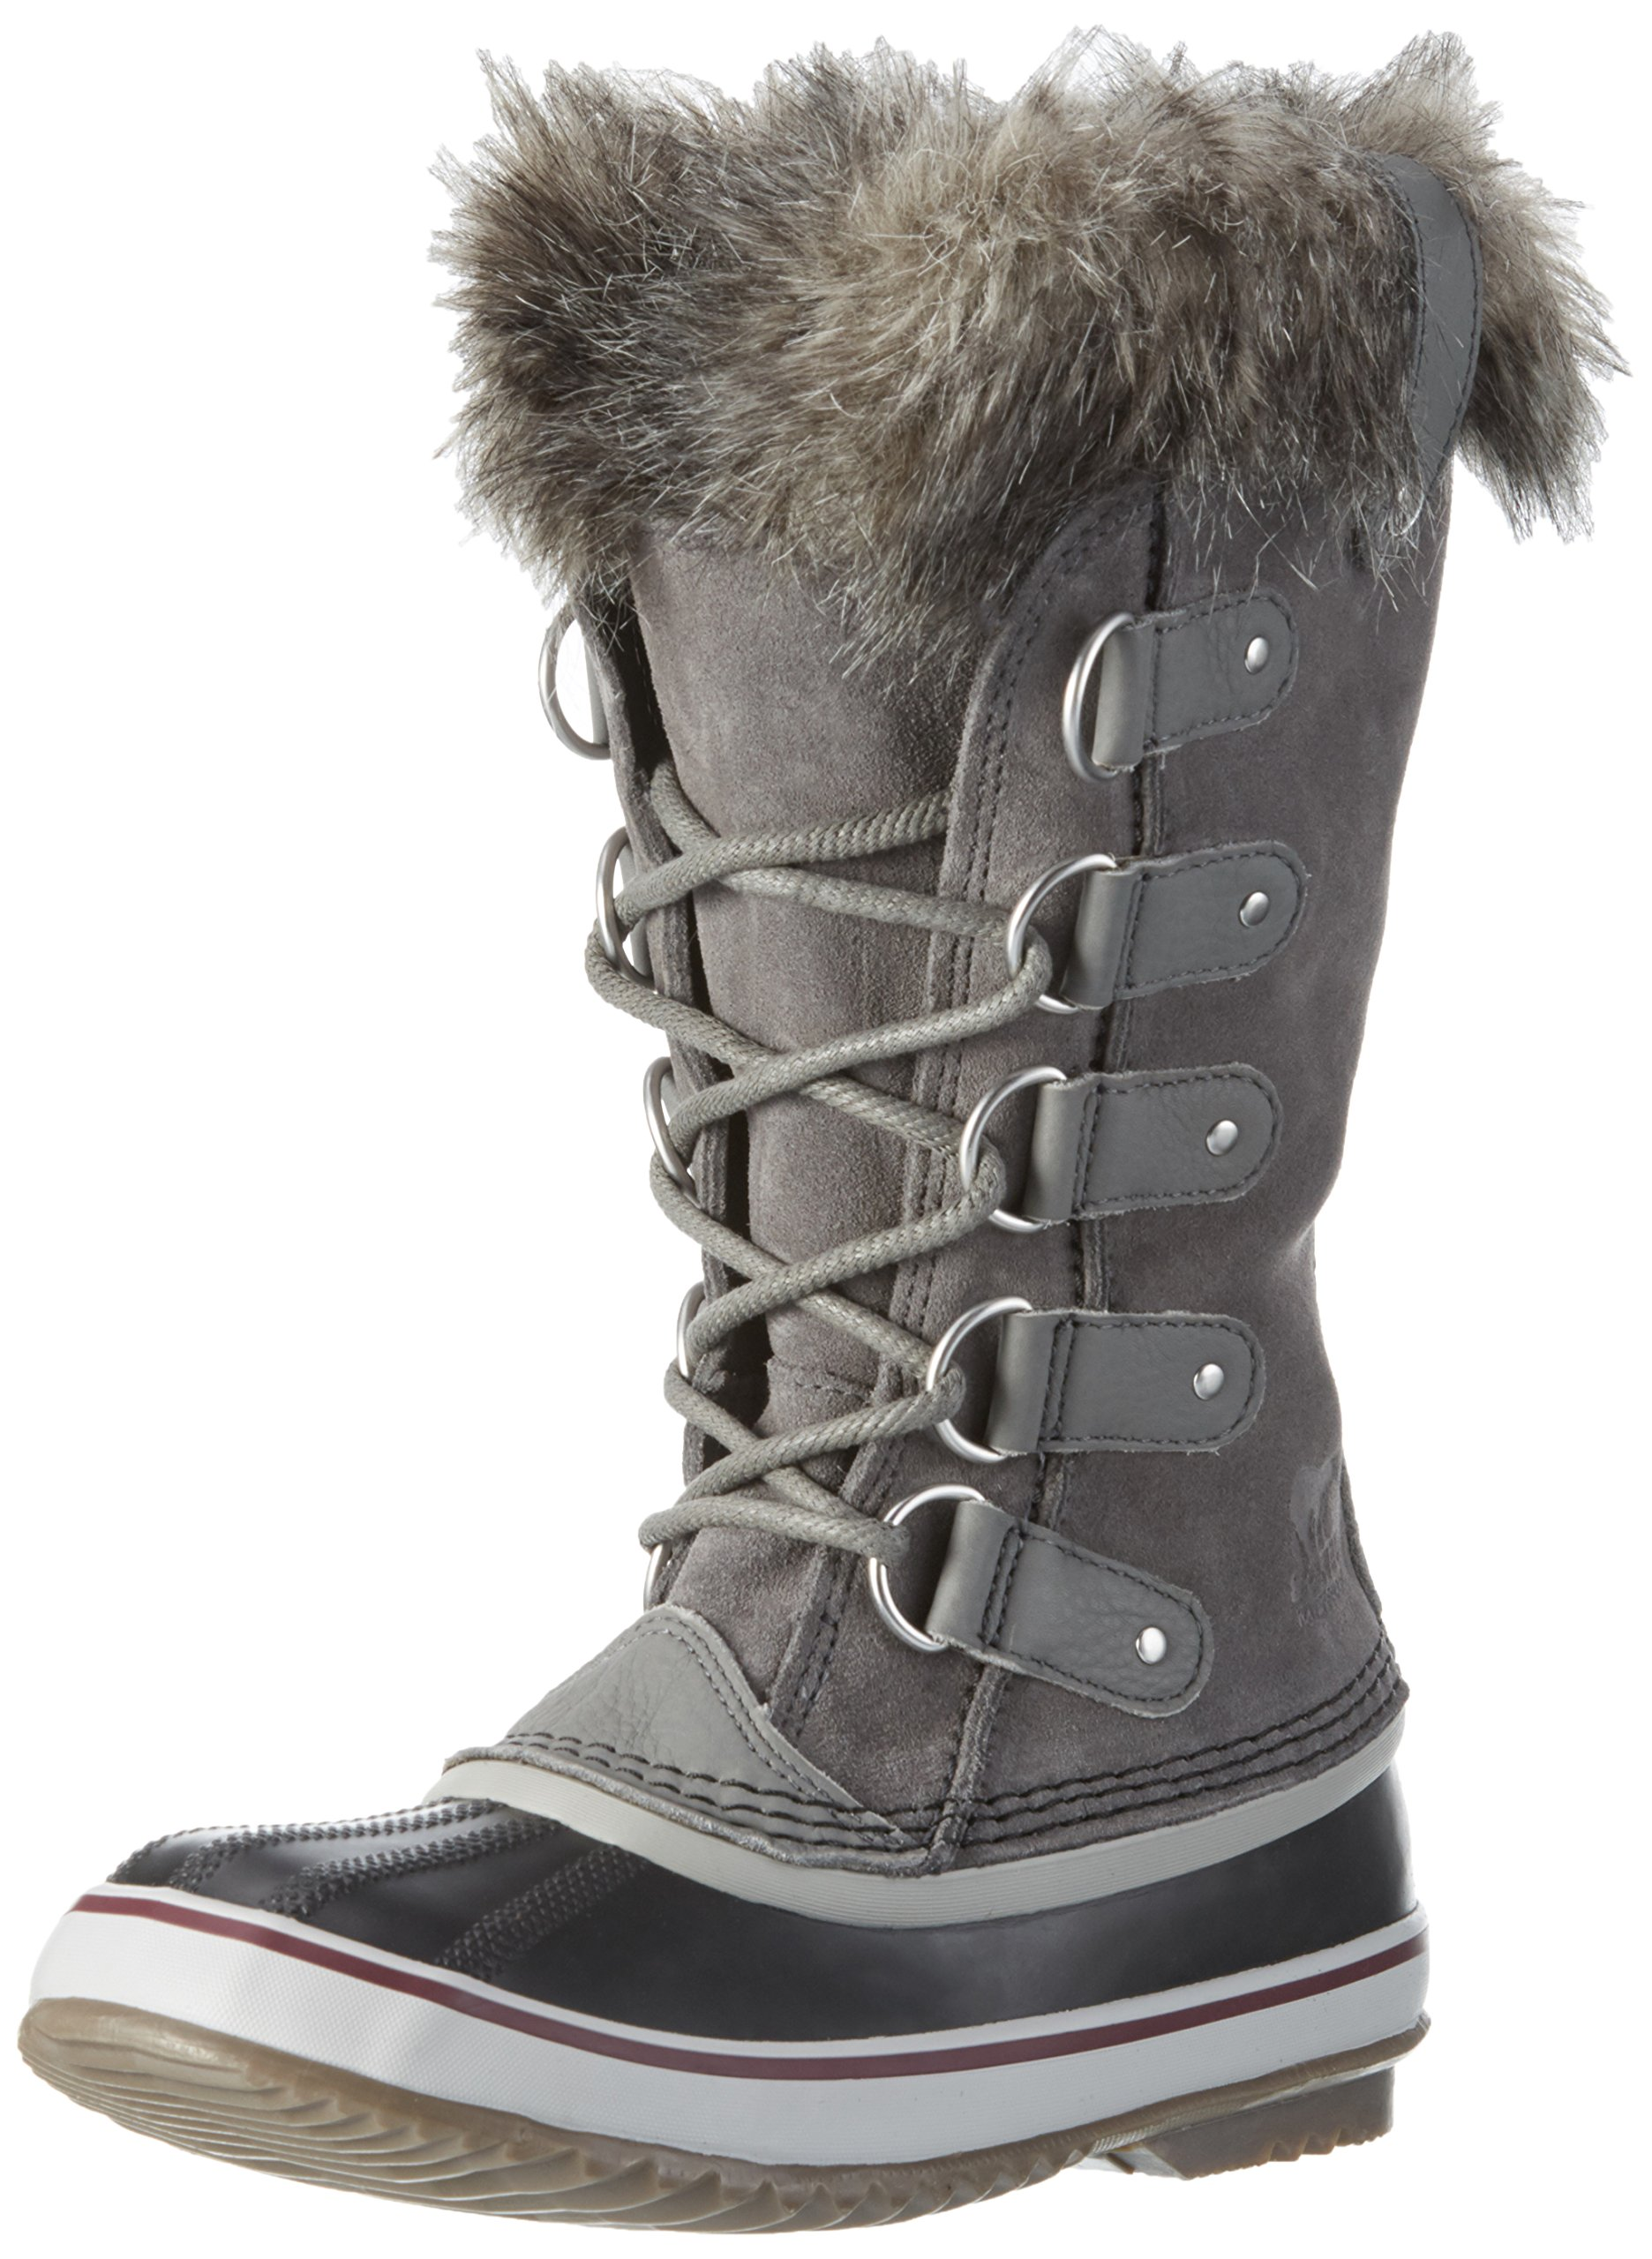 SOREL Women's Joan Of Arctic Boot,Quarry/Black,9 B(M) US